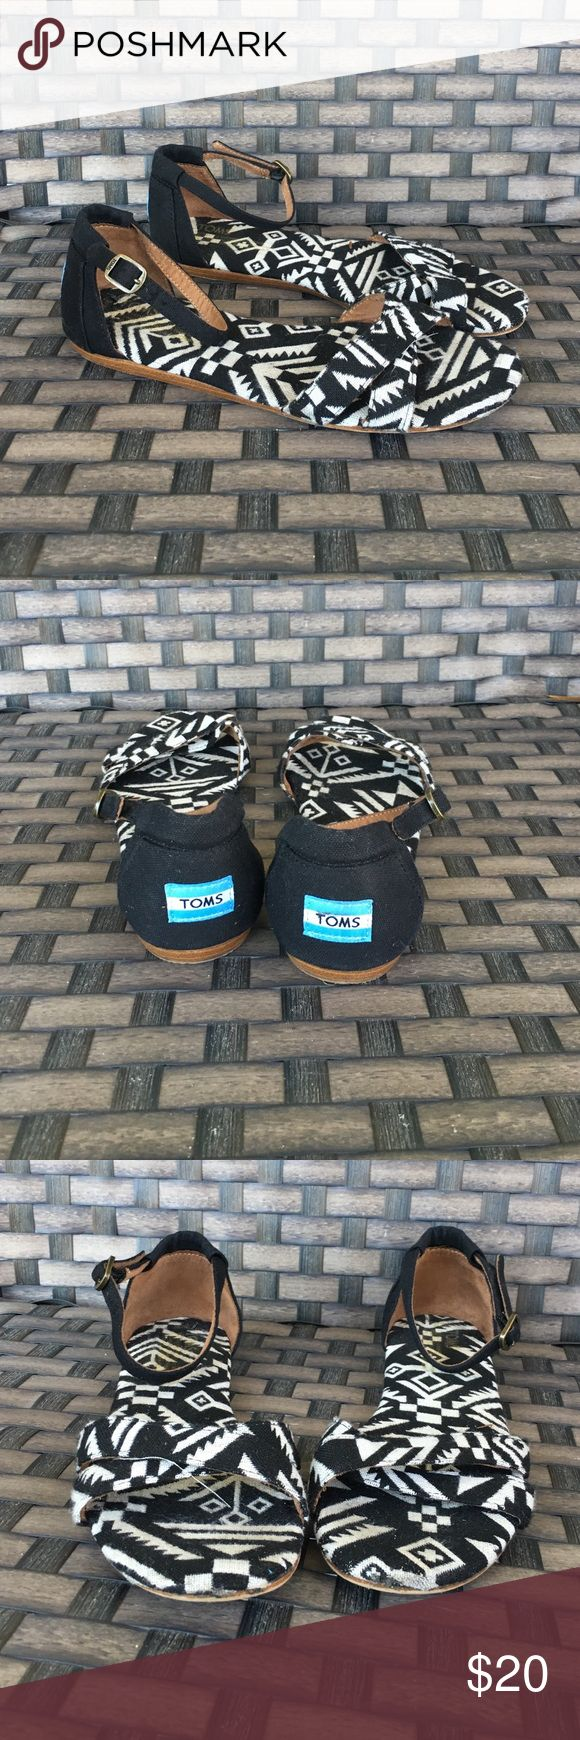 Toms Aztec flats Women's 8 good pre owned condition small scuff on one toe TOMS Shoes Sandals